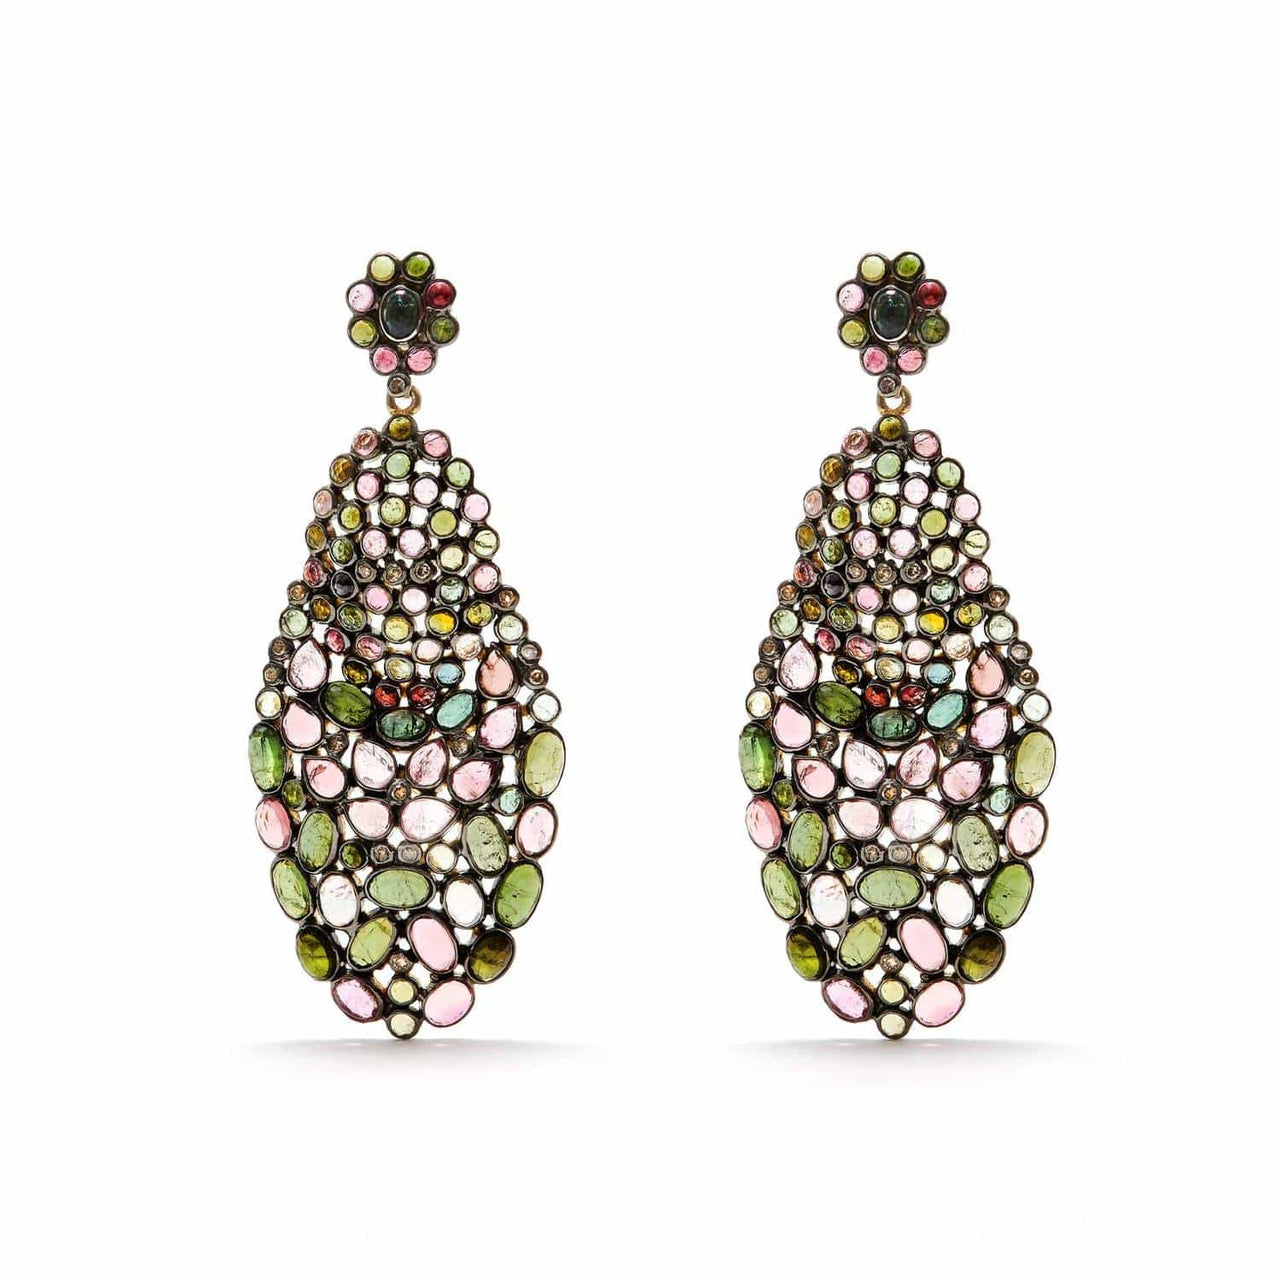 Jaipur Atelier 'Diaphanous' Multicolor Tourmaline & Diamond Tear Drops